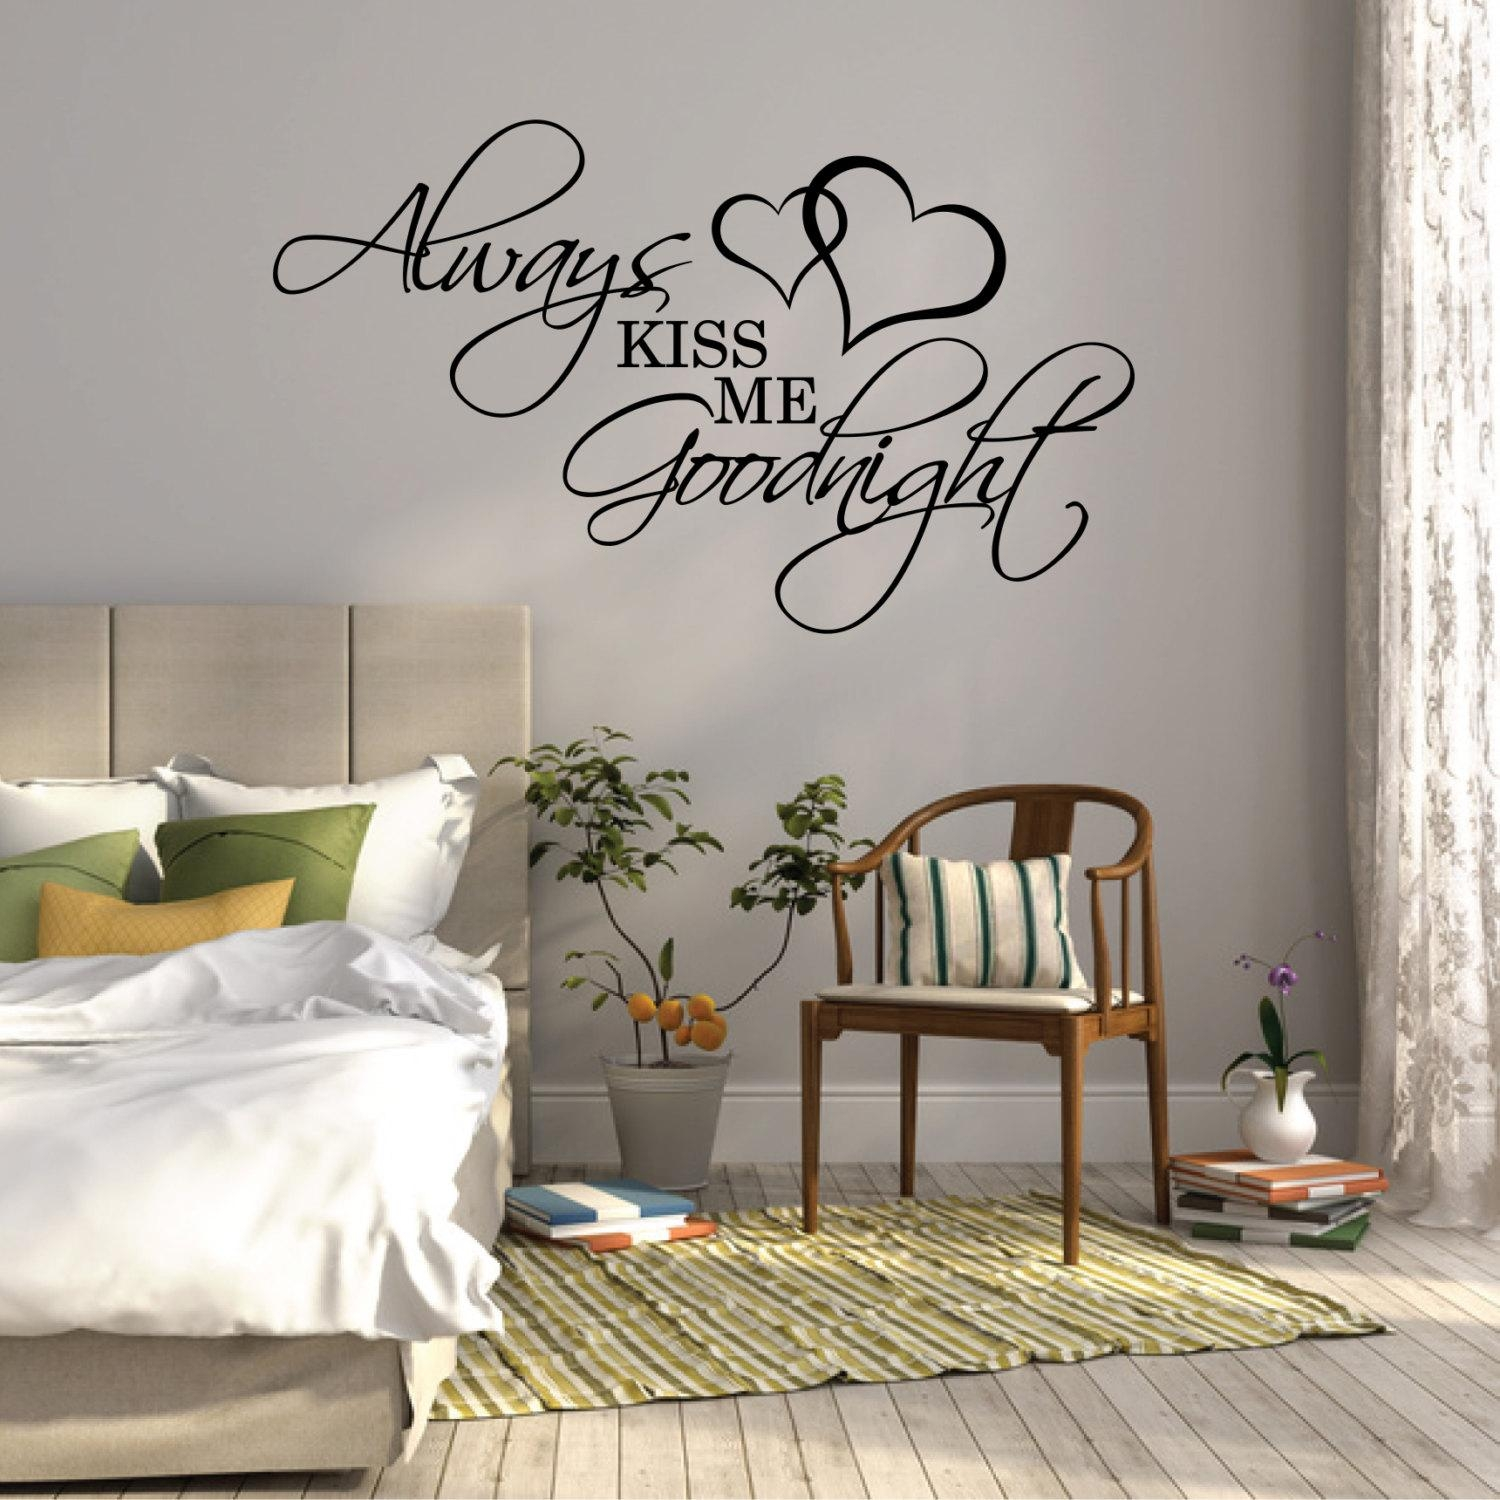 Wall Sticker Quote Always Kiss Me Goodnight Over Bed Wall With Regard To Wall Art Over Bed (View 3 of 20)